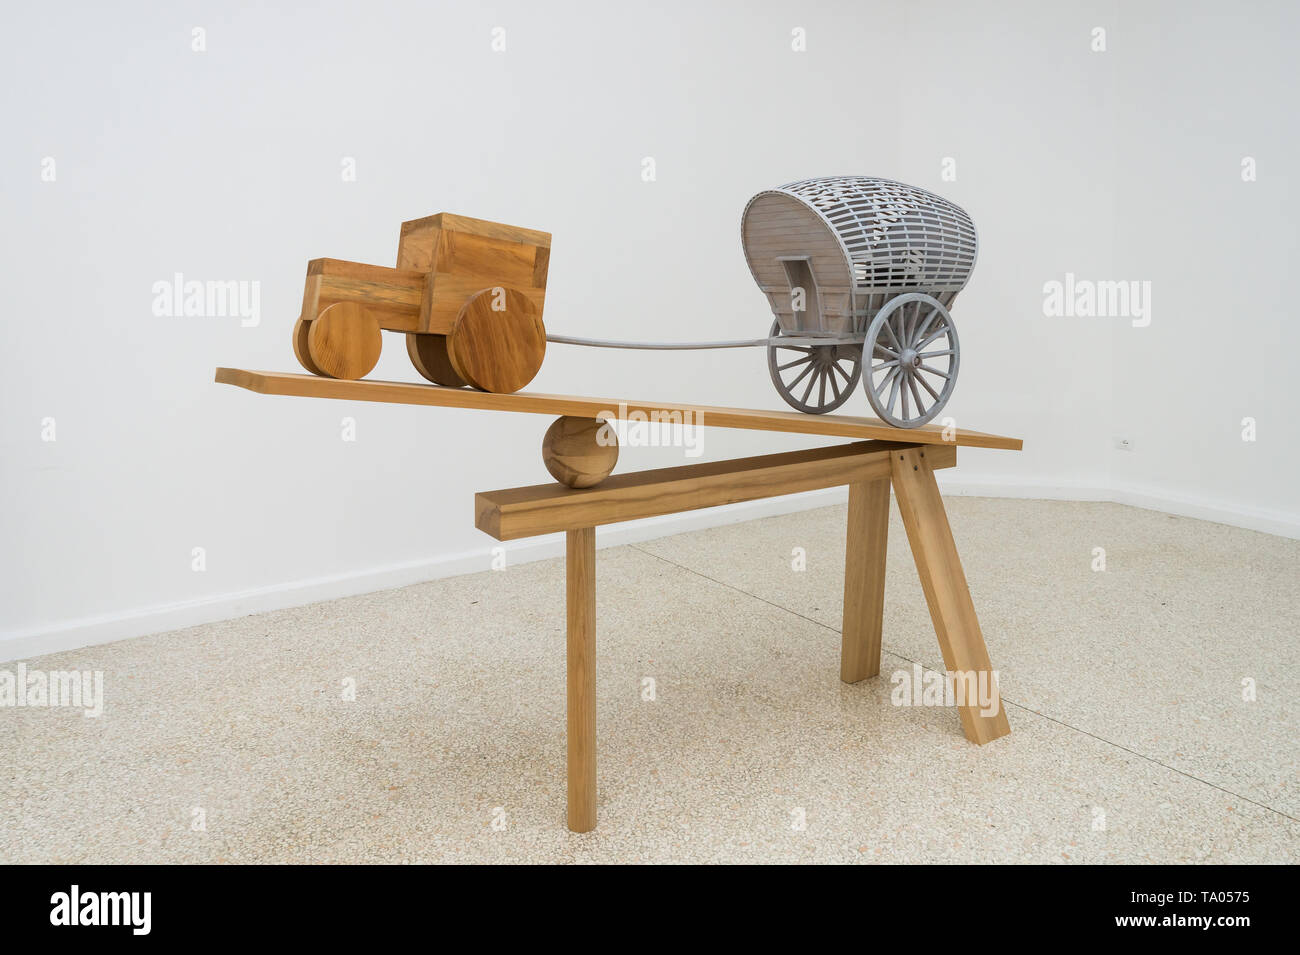 Martin Puryear, New Voortrekker, 2018, sculpture, Liberty / Libertà exhibition, United States Pavilion, 58th Venice Art Biennale 2019 - Stock Image